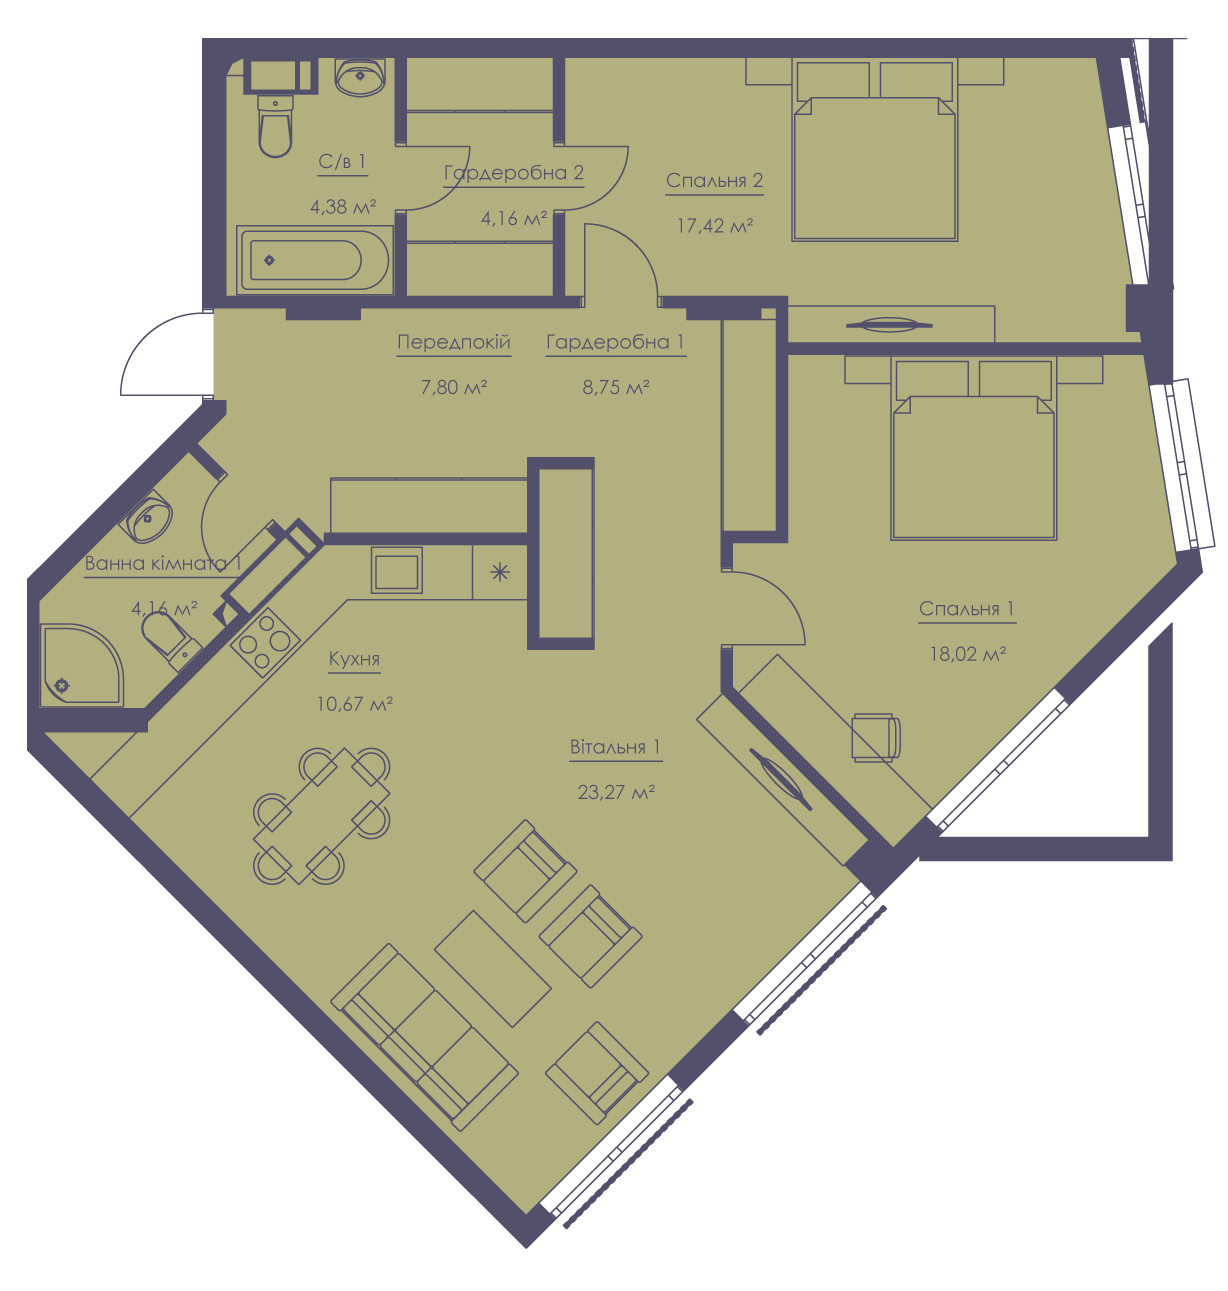 Apartment layout KV_24_3a_1_1_12-1